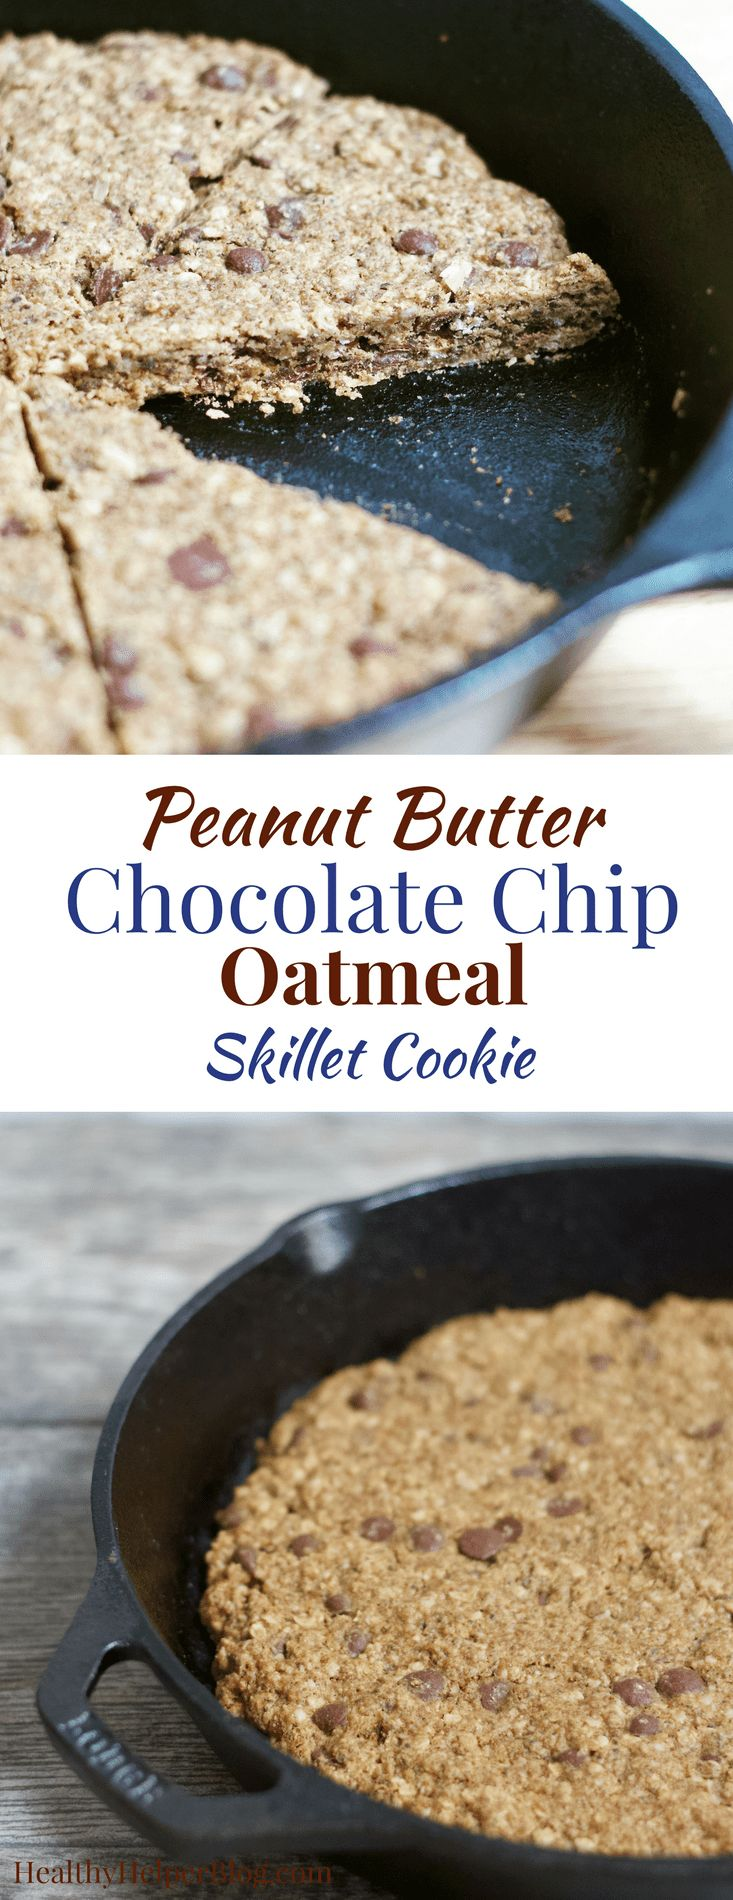 Peanut Butter Chocolate Chip Oatmeal Cookie Skillet | Healthy Helper @Healthy_Helper Ooey gooey cookie deliciousness! This soft and doughy half-baked cookie skillet is full of peanut butter & chocolate, while bursting with whole grain goodness and healthy fats. Vegan, gluten-free, and so easy to make!